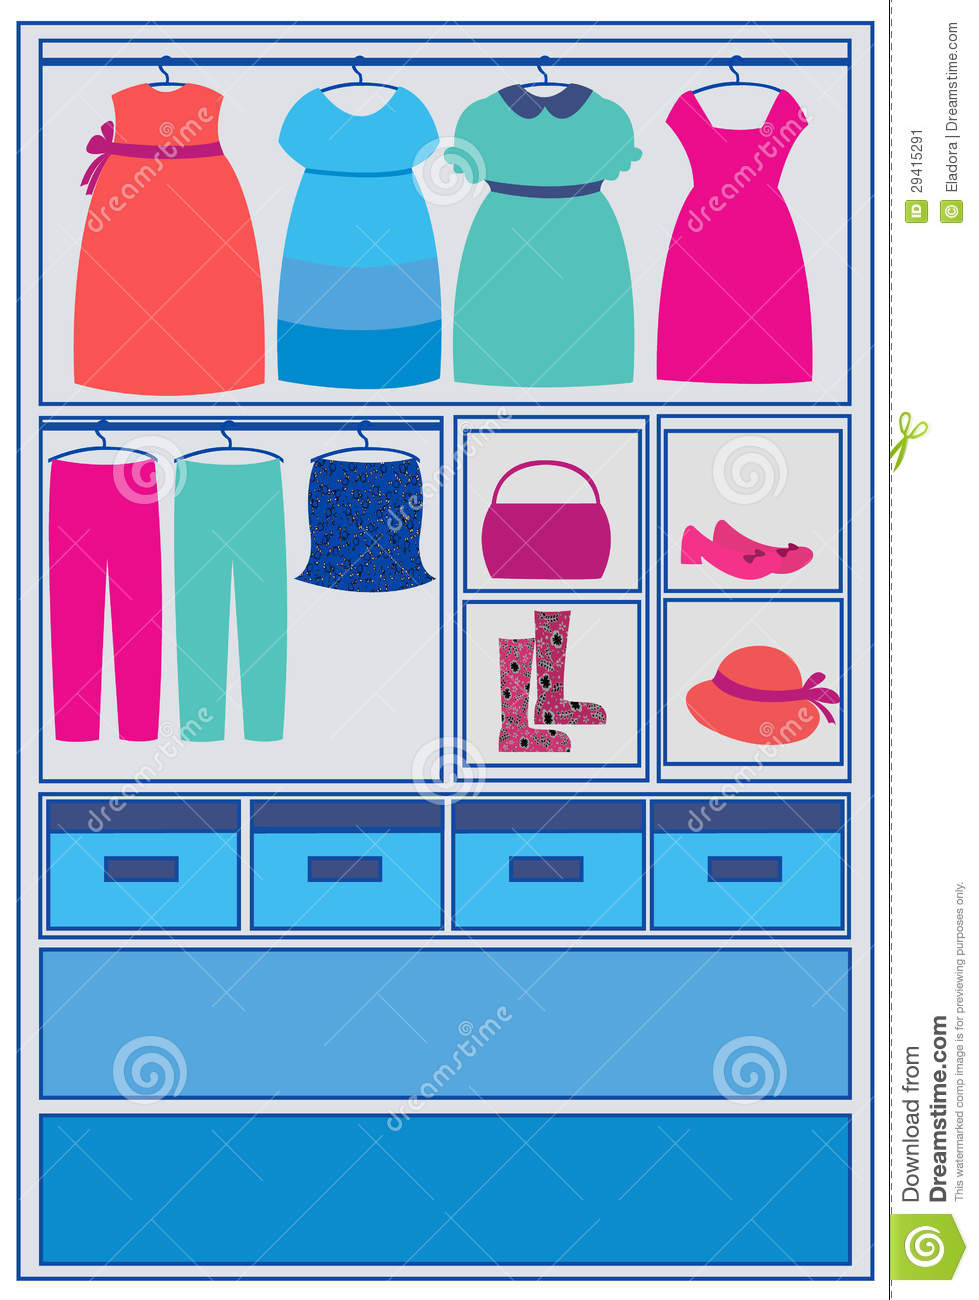 Clip Art Closet Clipart clothes closet clipart kid image search results